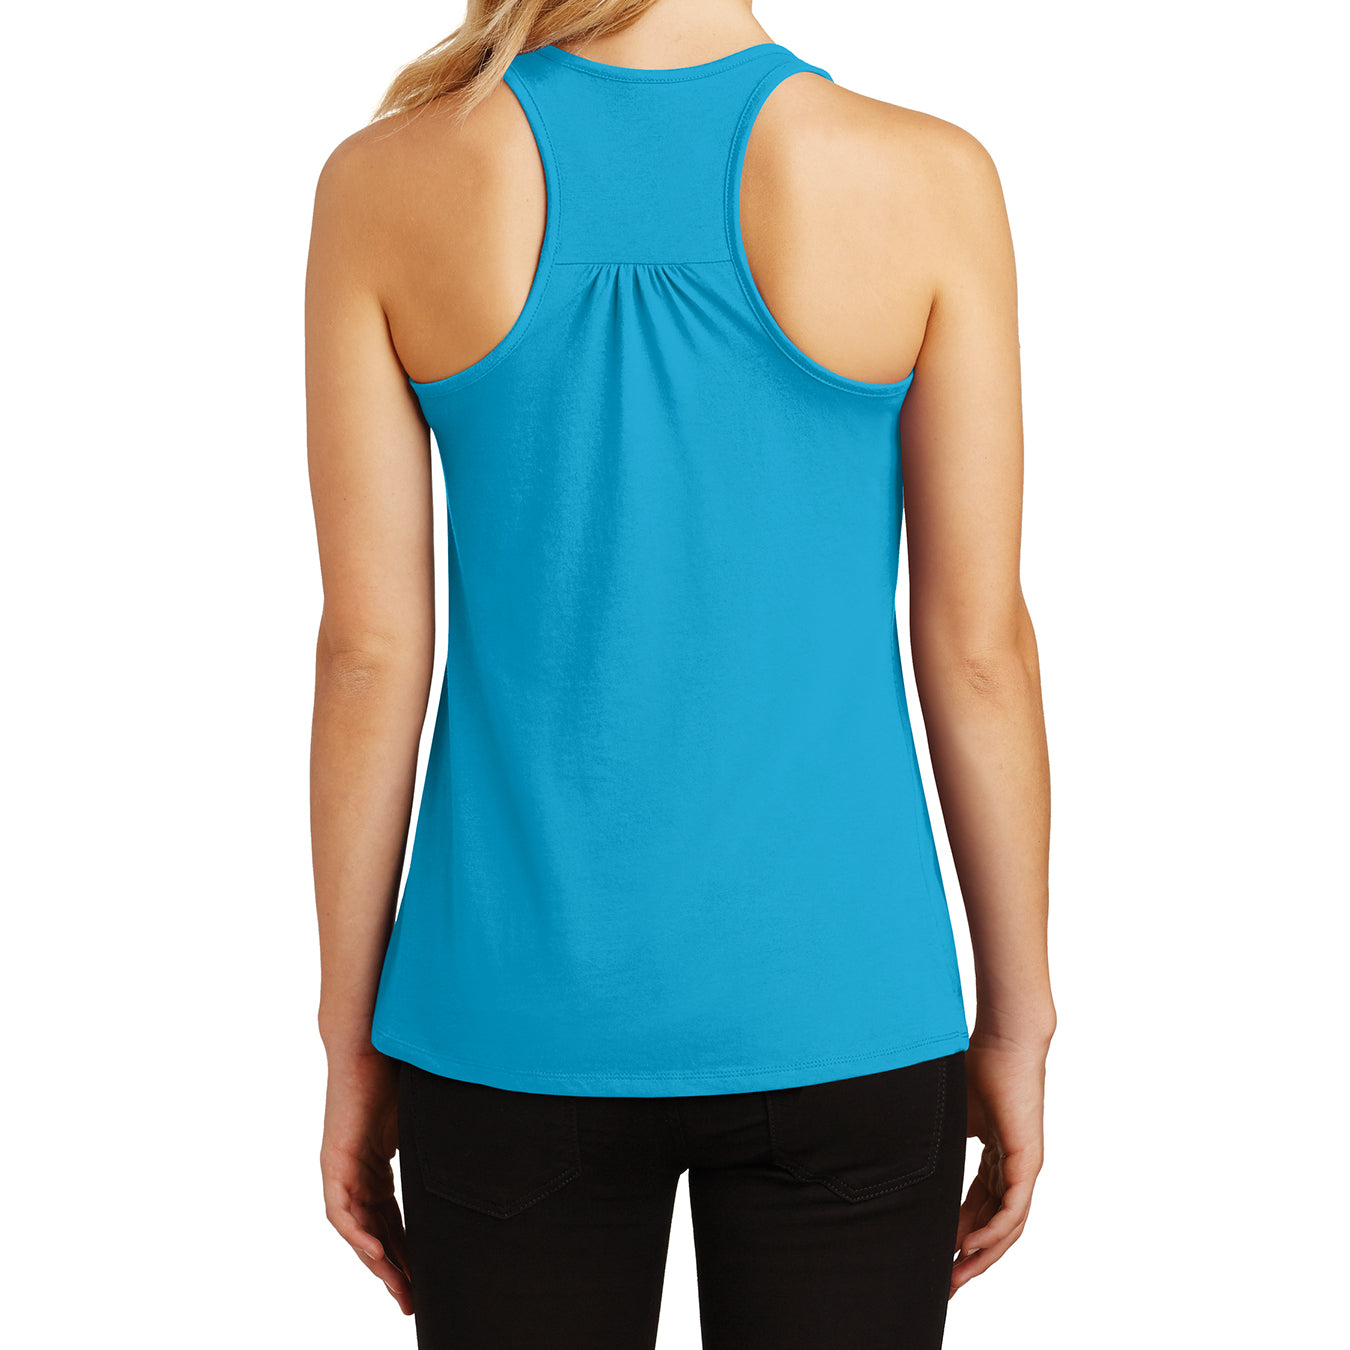 Womens Solid Gathered Racerback Tank - Light Turquoise - Back